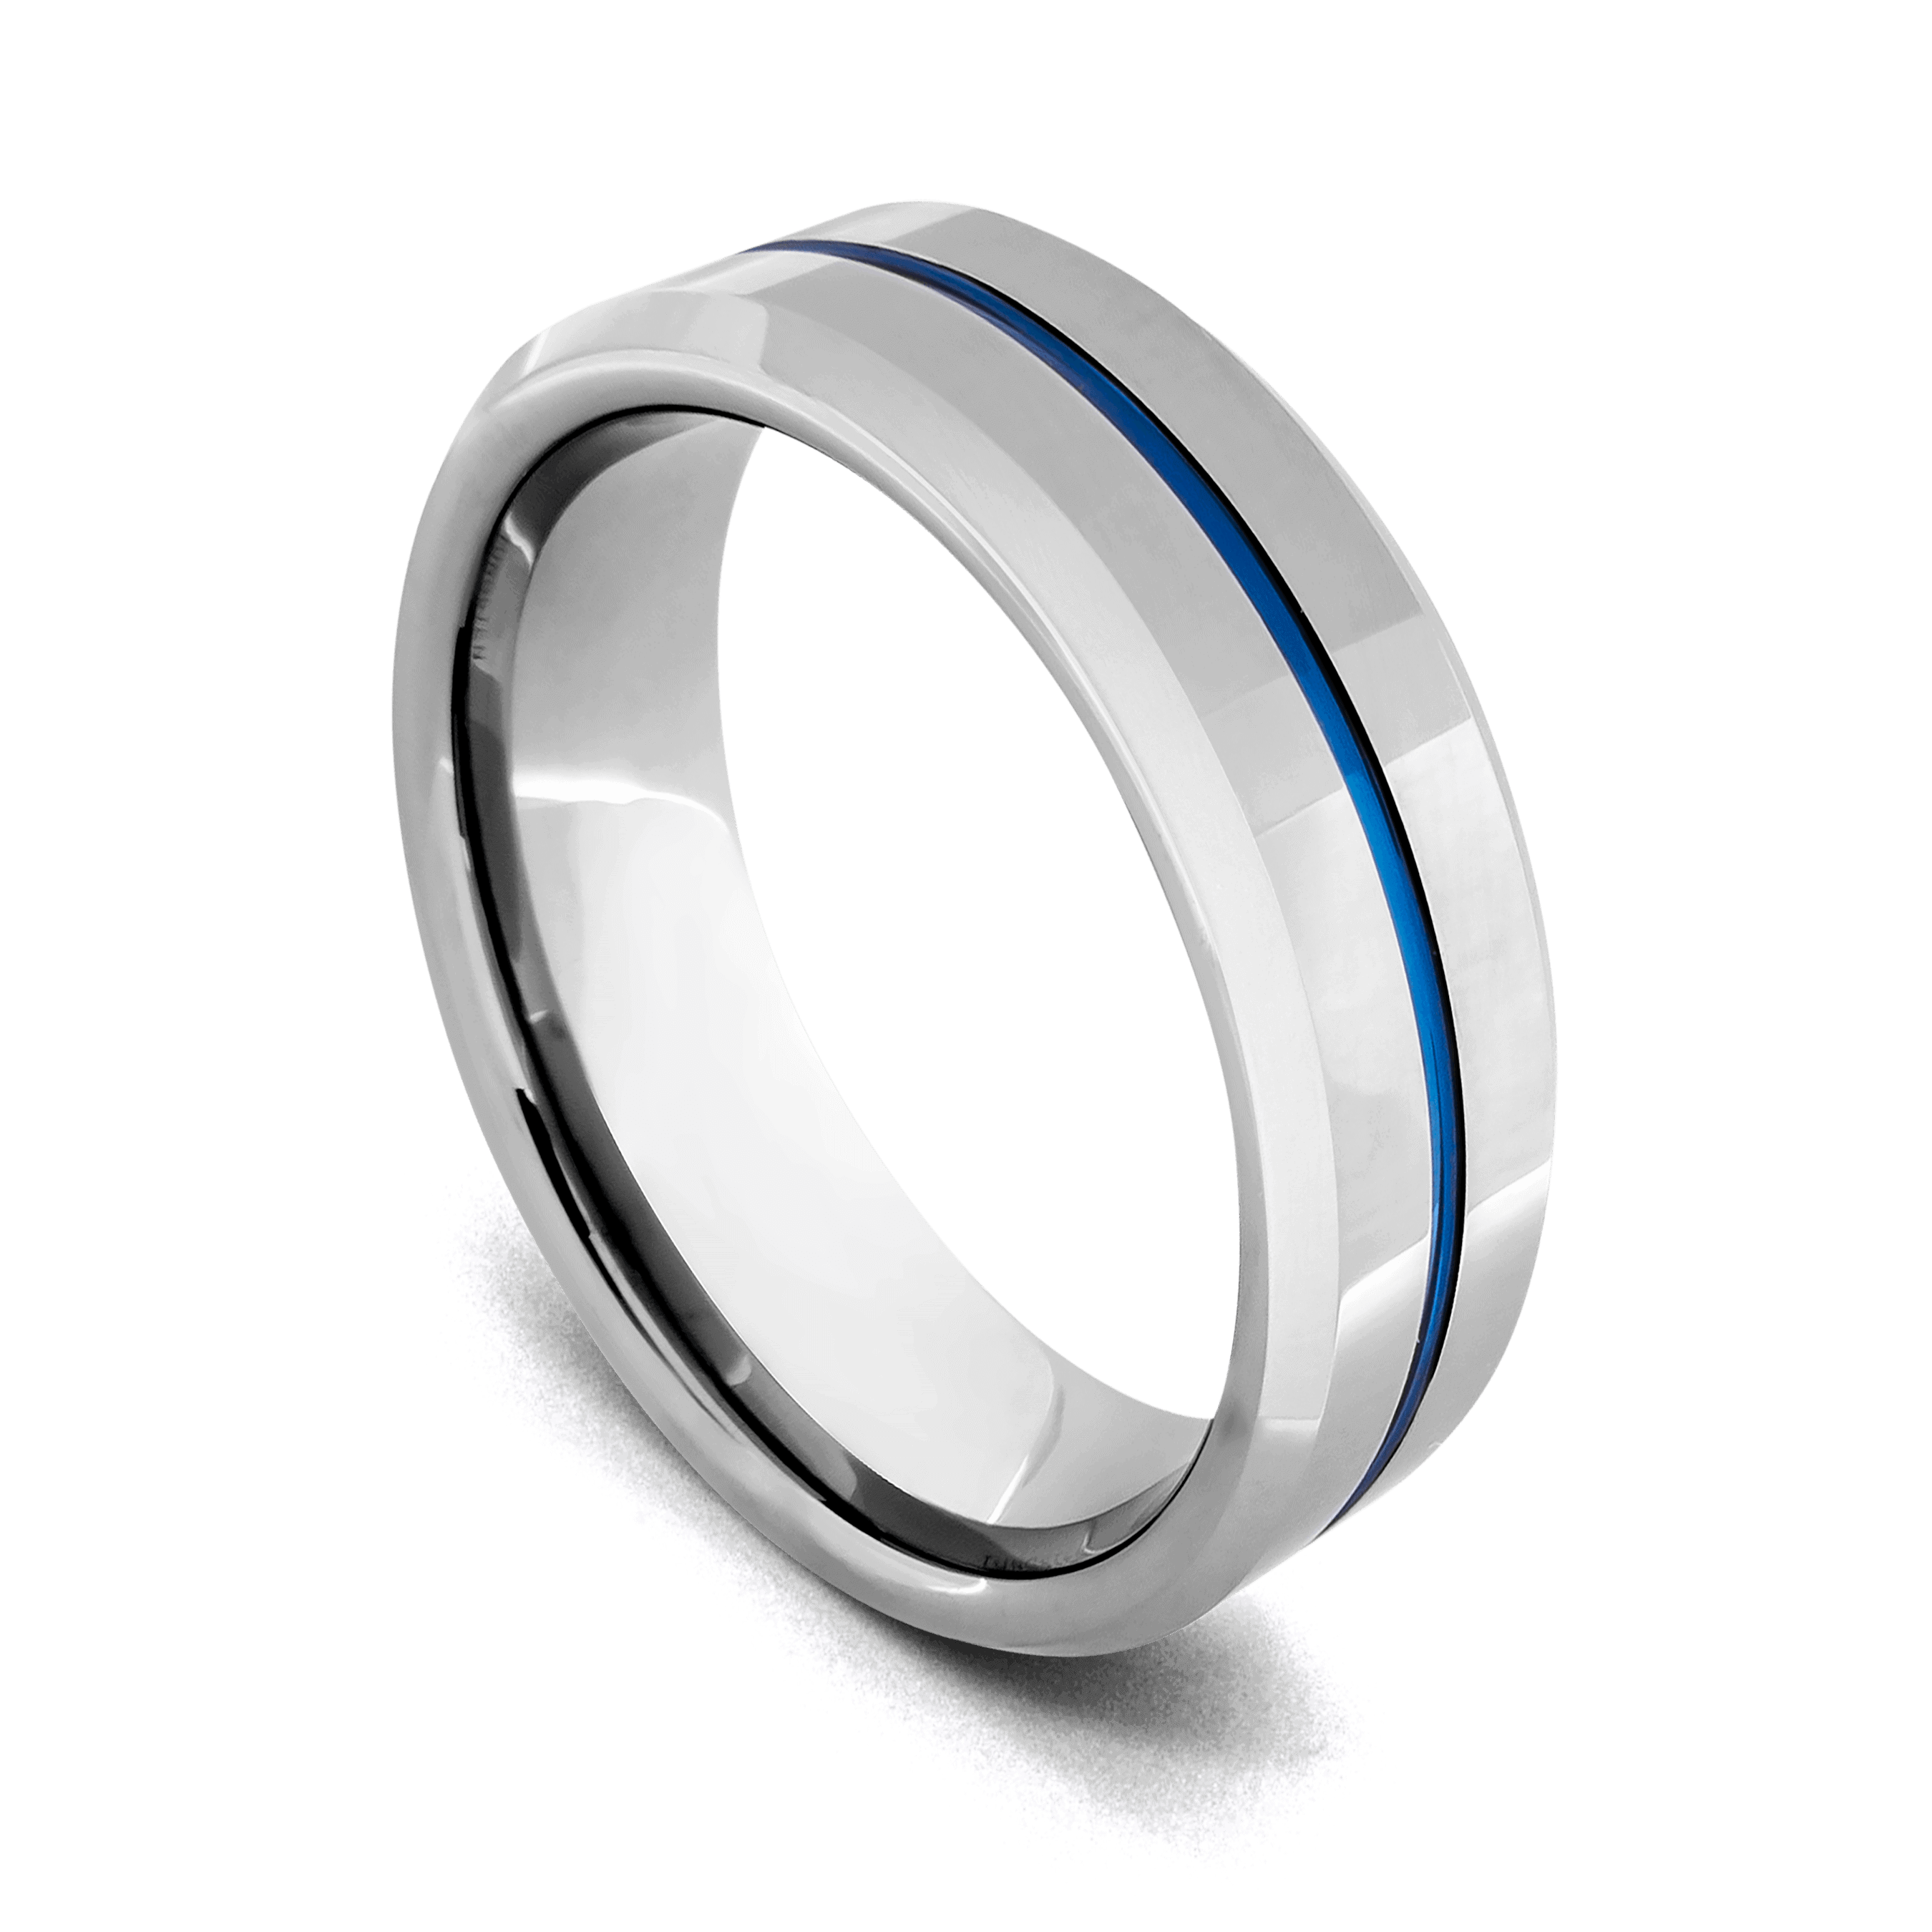 Men's Tungsten Carbide Ring - Silver with Vibrant Groove of Blue